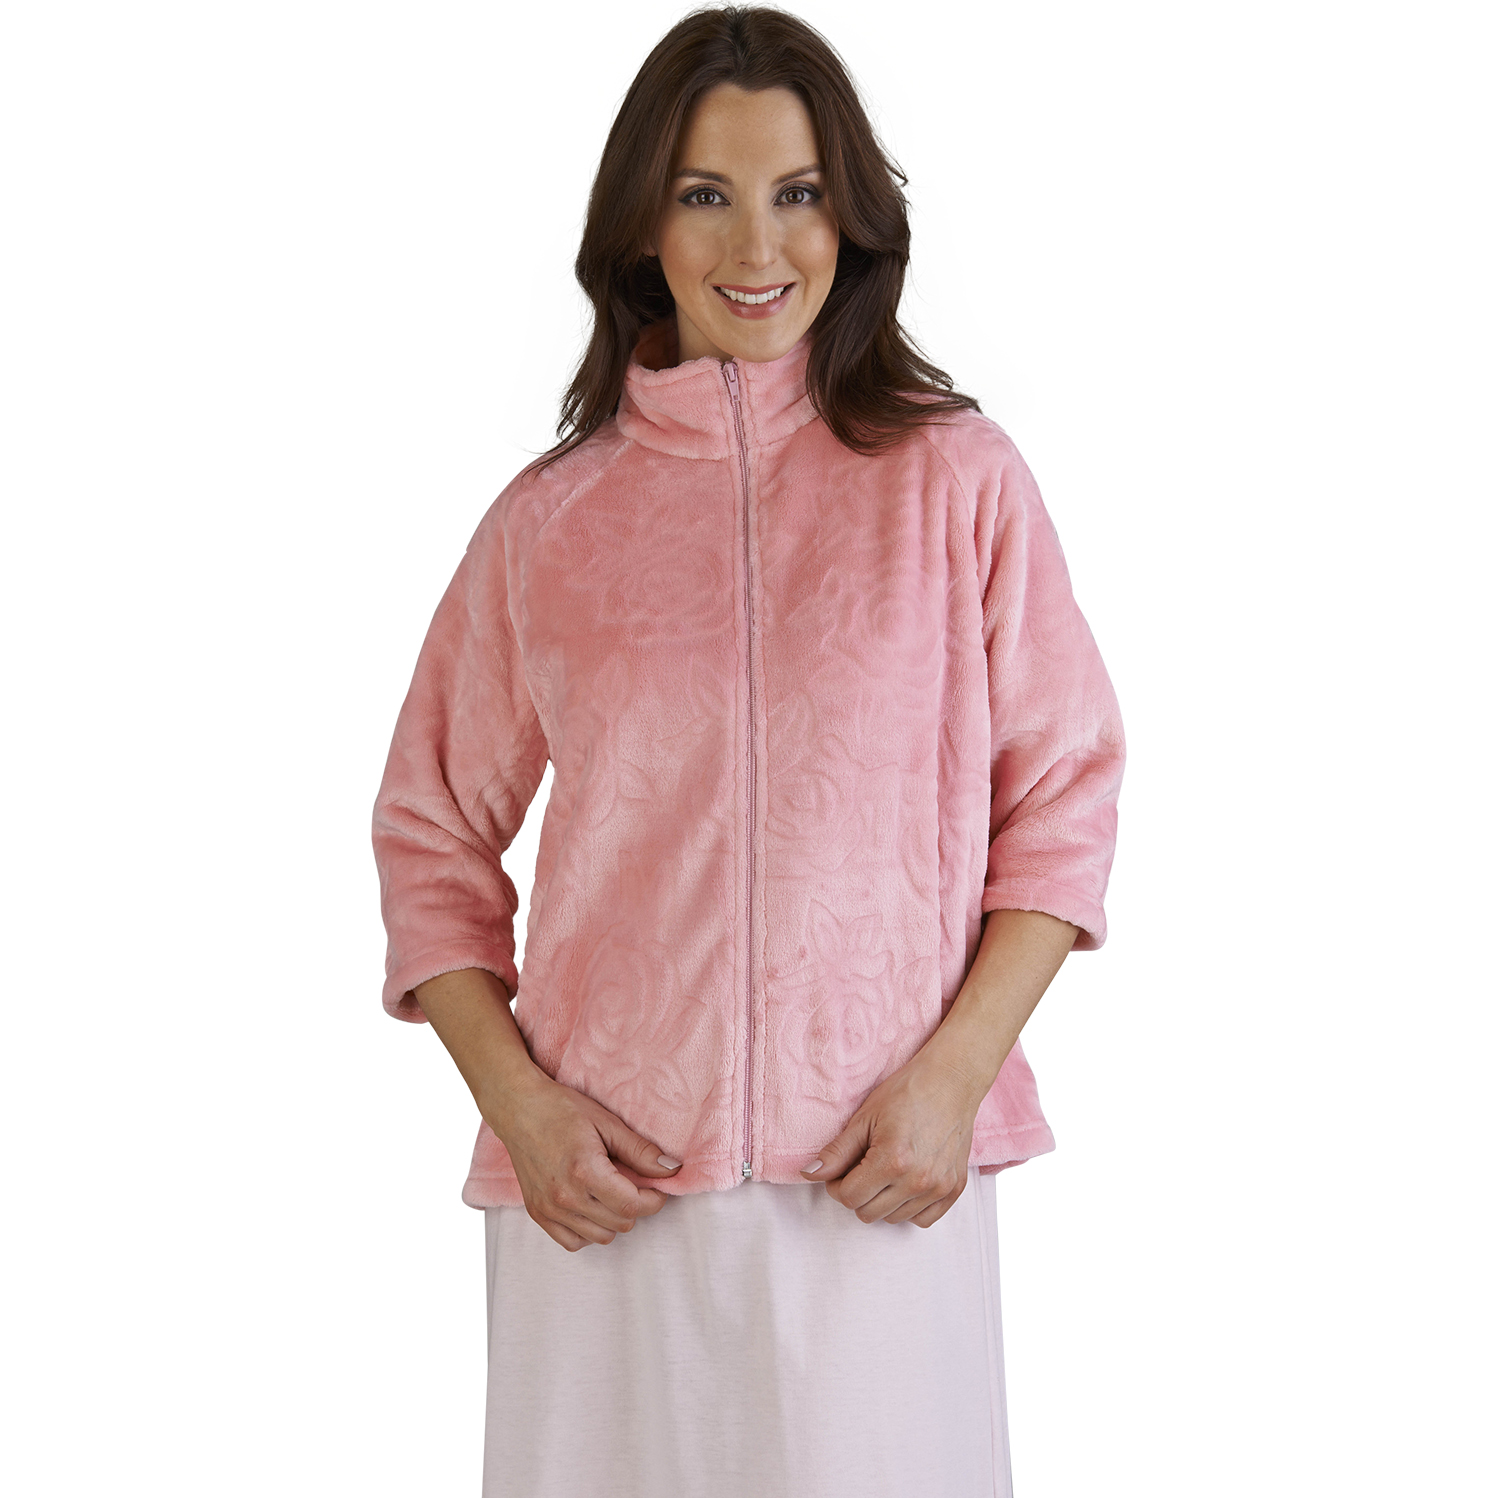 bigframenetwork.ga provides pink ladies jacket items from China top selected Women's Jackets, Women's Outerwear & Coats, Women's Clothing, Apparel suppliers at wholesale prices with worldwide delivery. You can find jacket, Women pink ladies jacket free shipping, ladies pink jacket and view 53 pink ladies jacket reviews to help you choose.